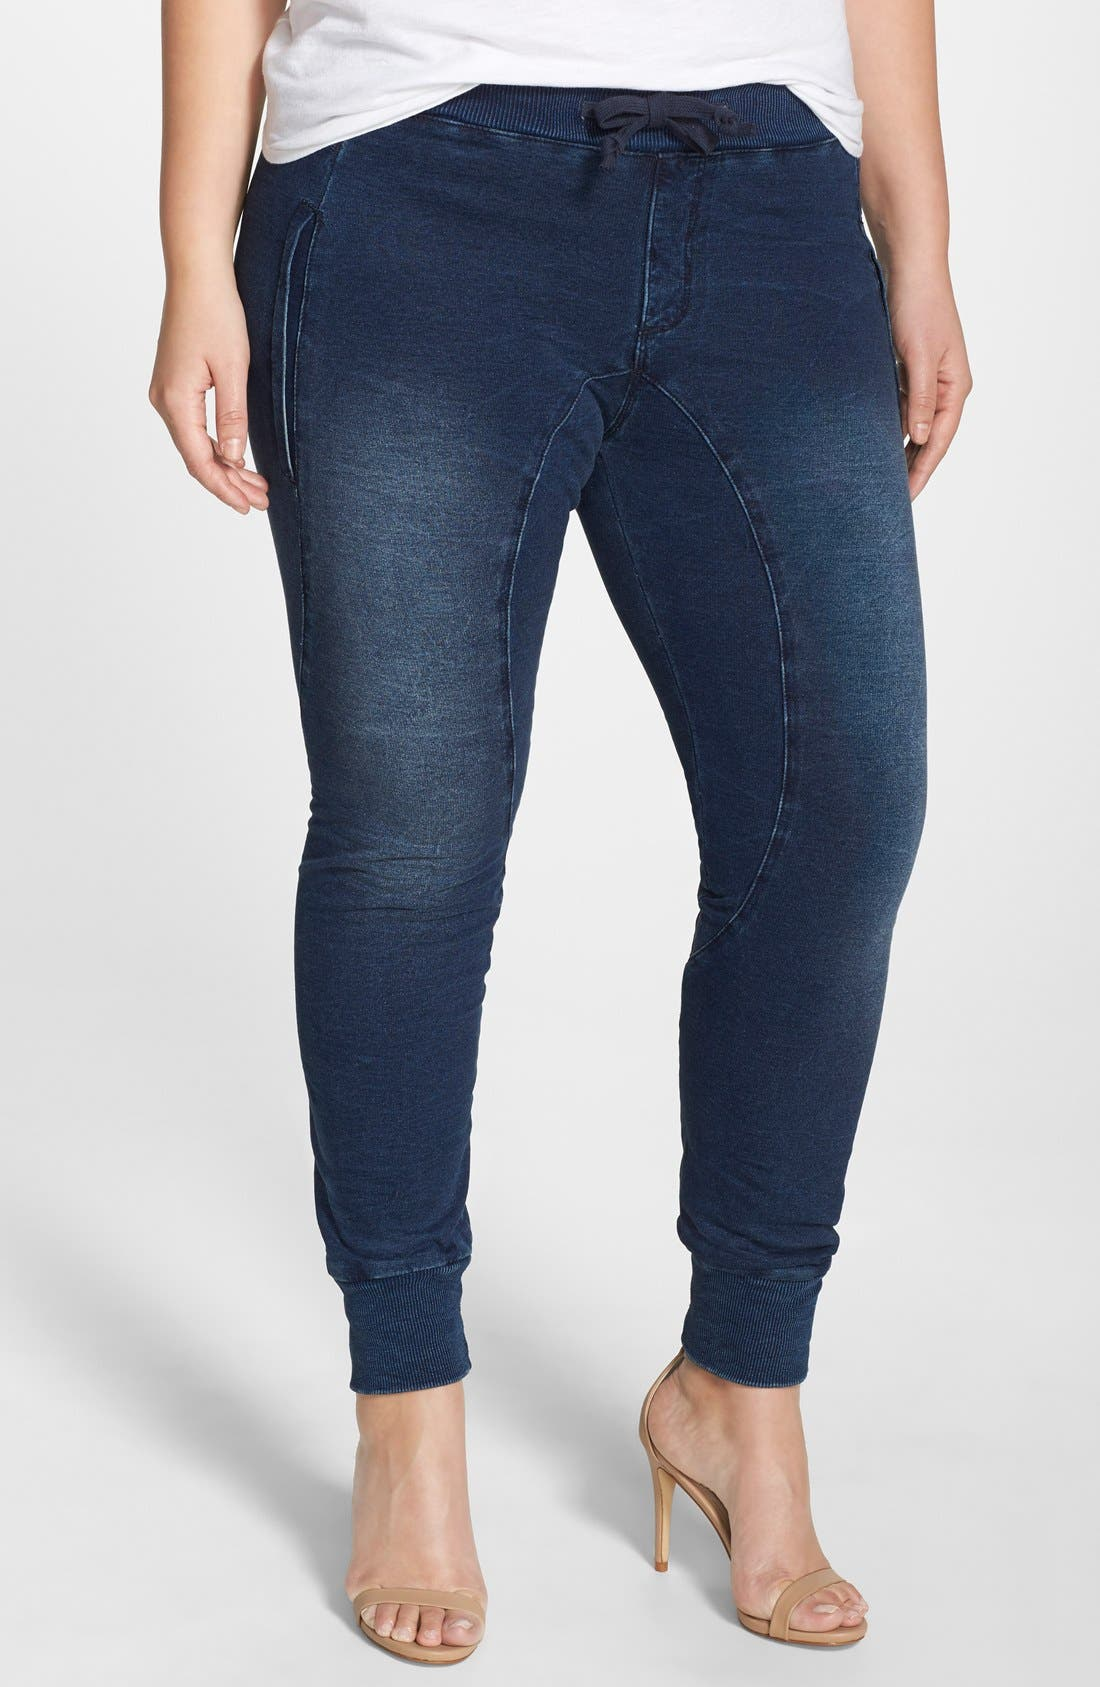 Poetic Justice 'Jonjon' Stretch Knit Denim Jogger Pants (Plus Size)